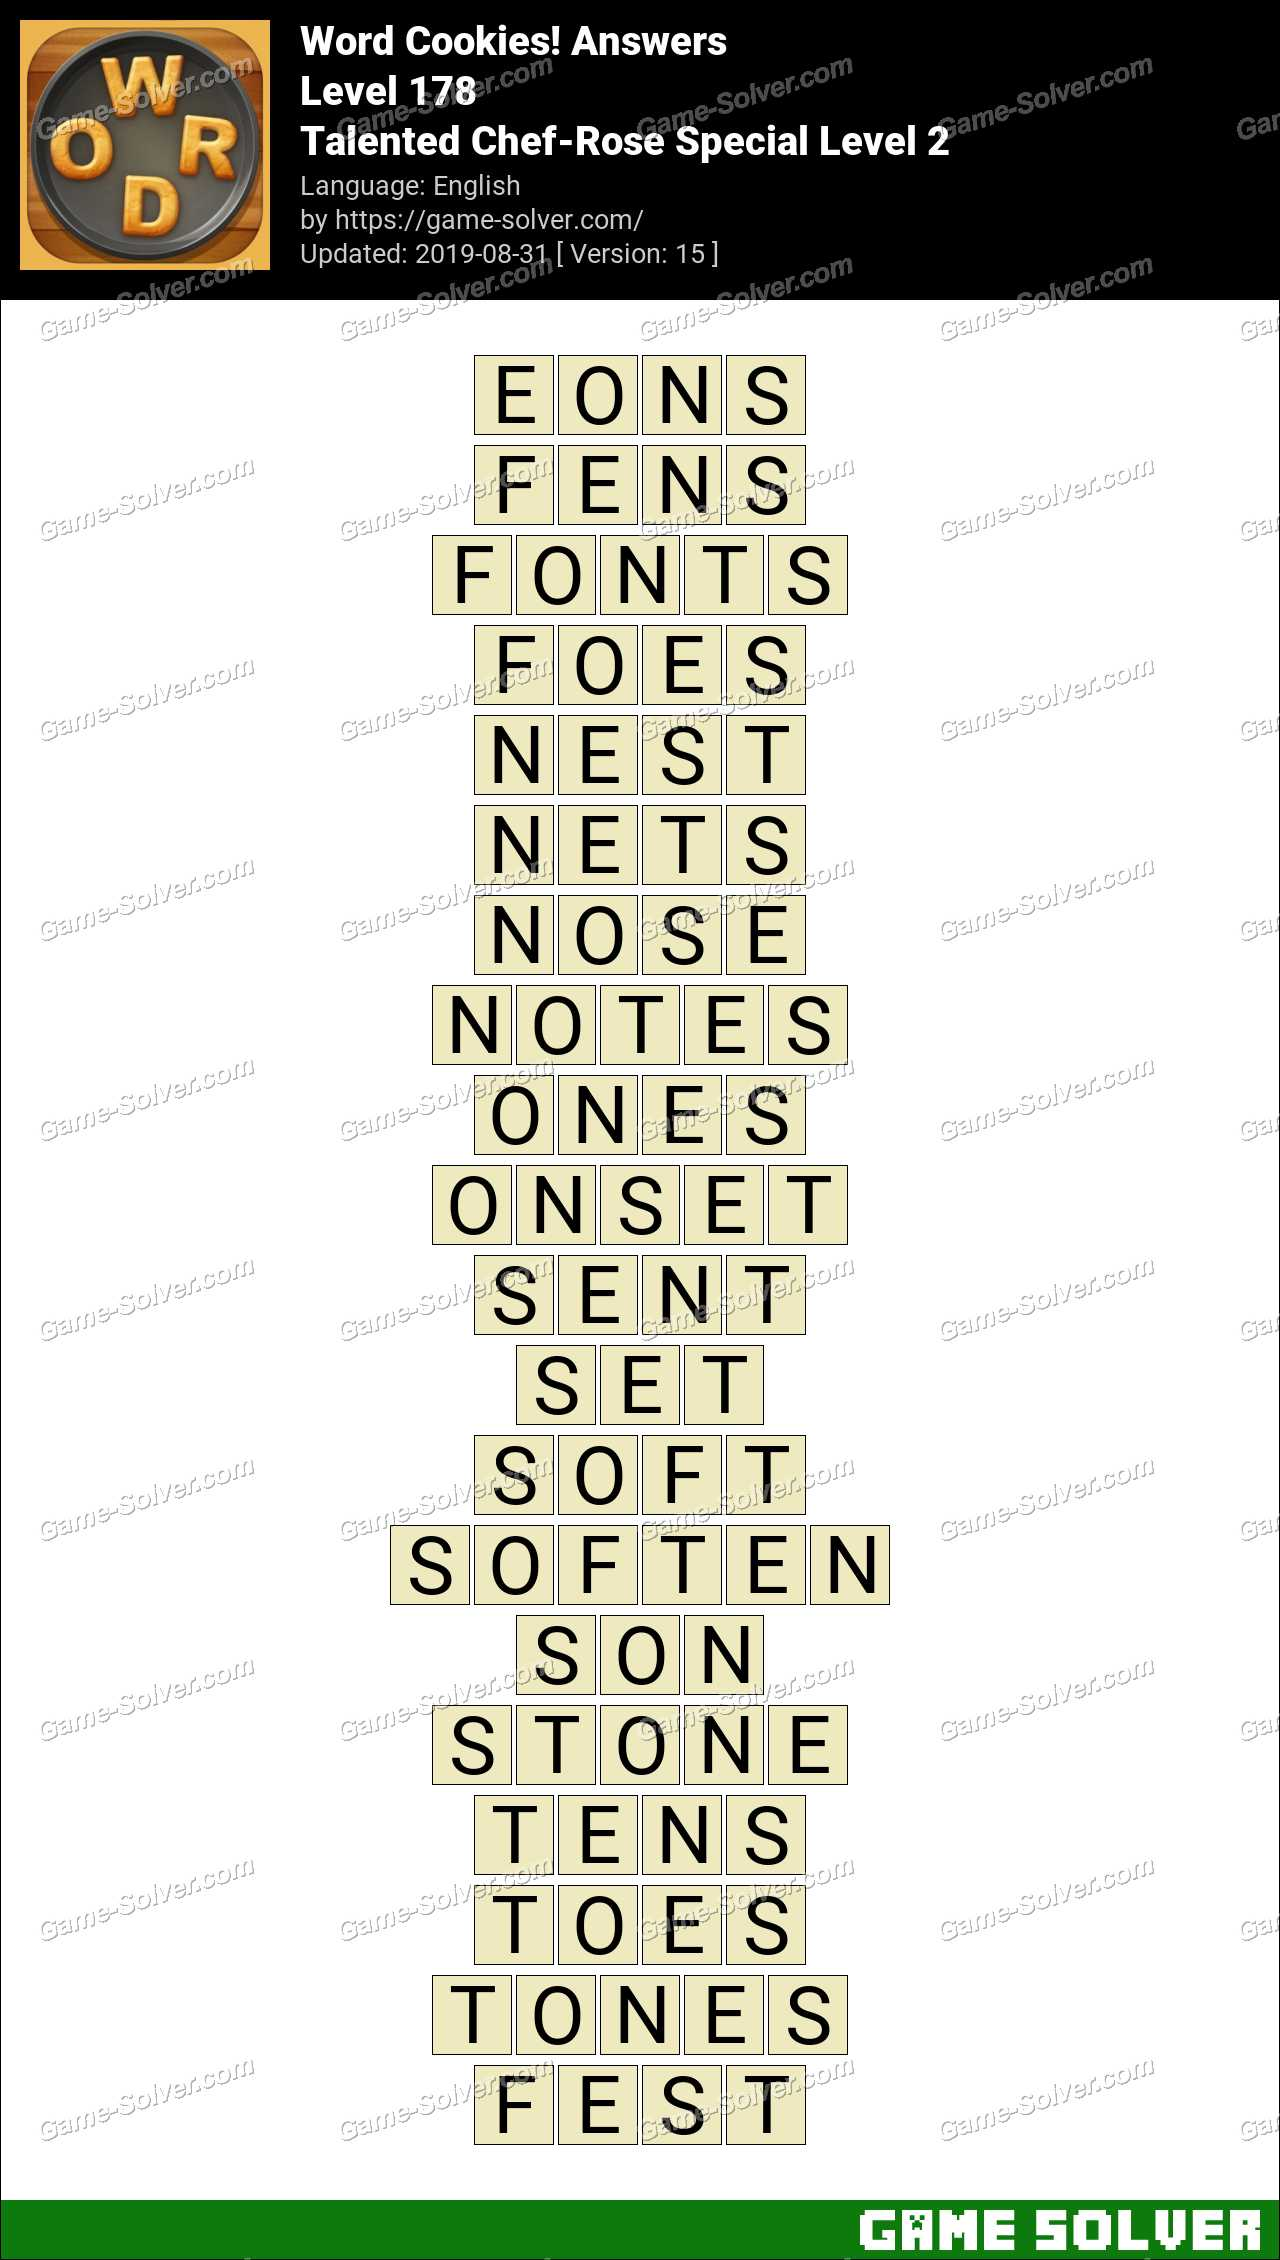 Word Cookies Talented Chef-Rose Special Level 2 Answers